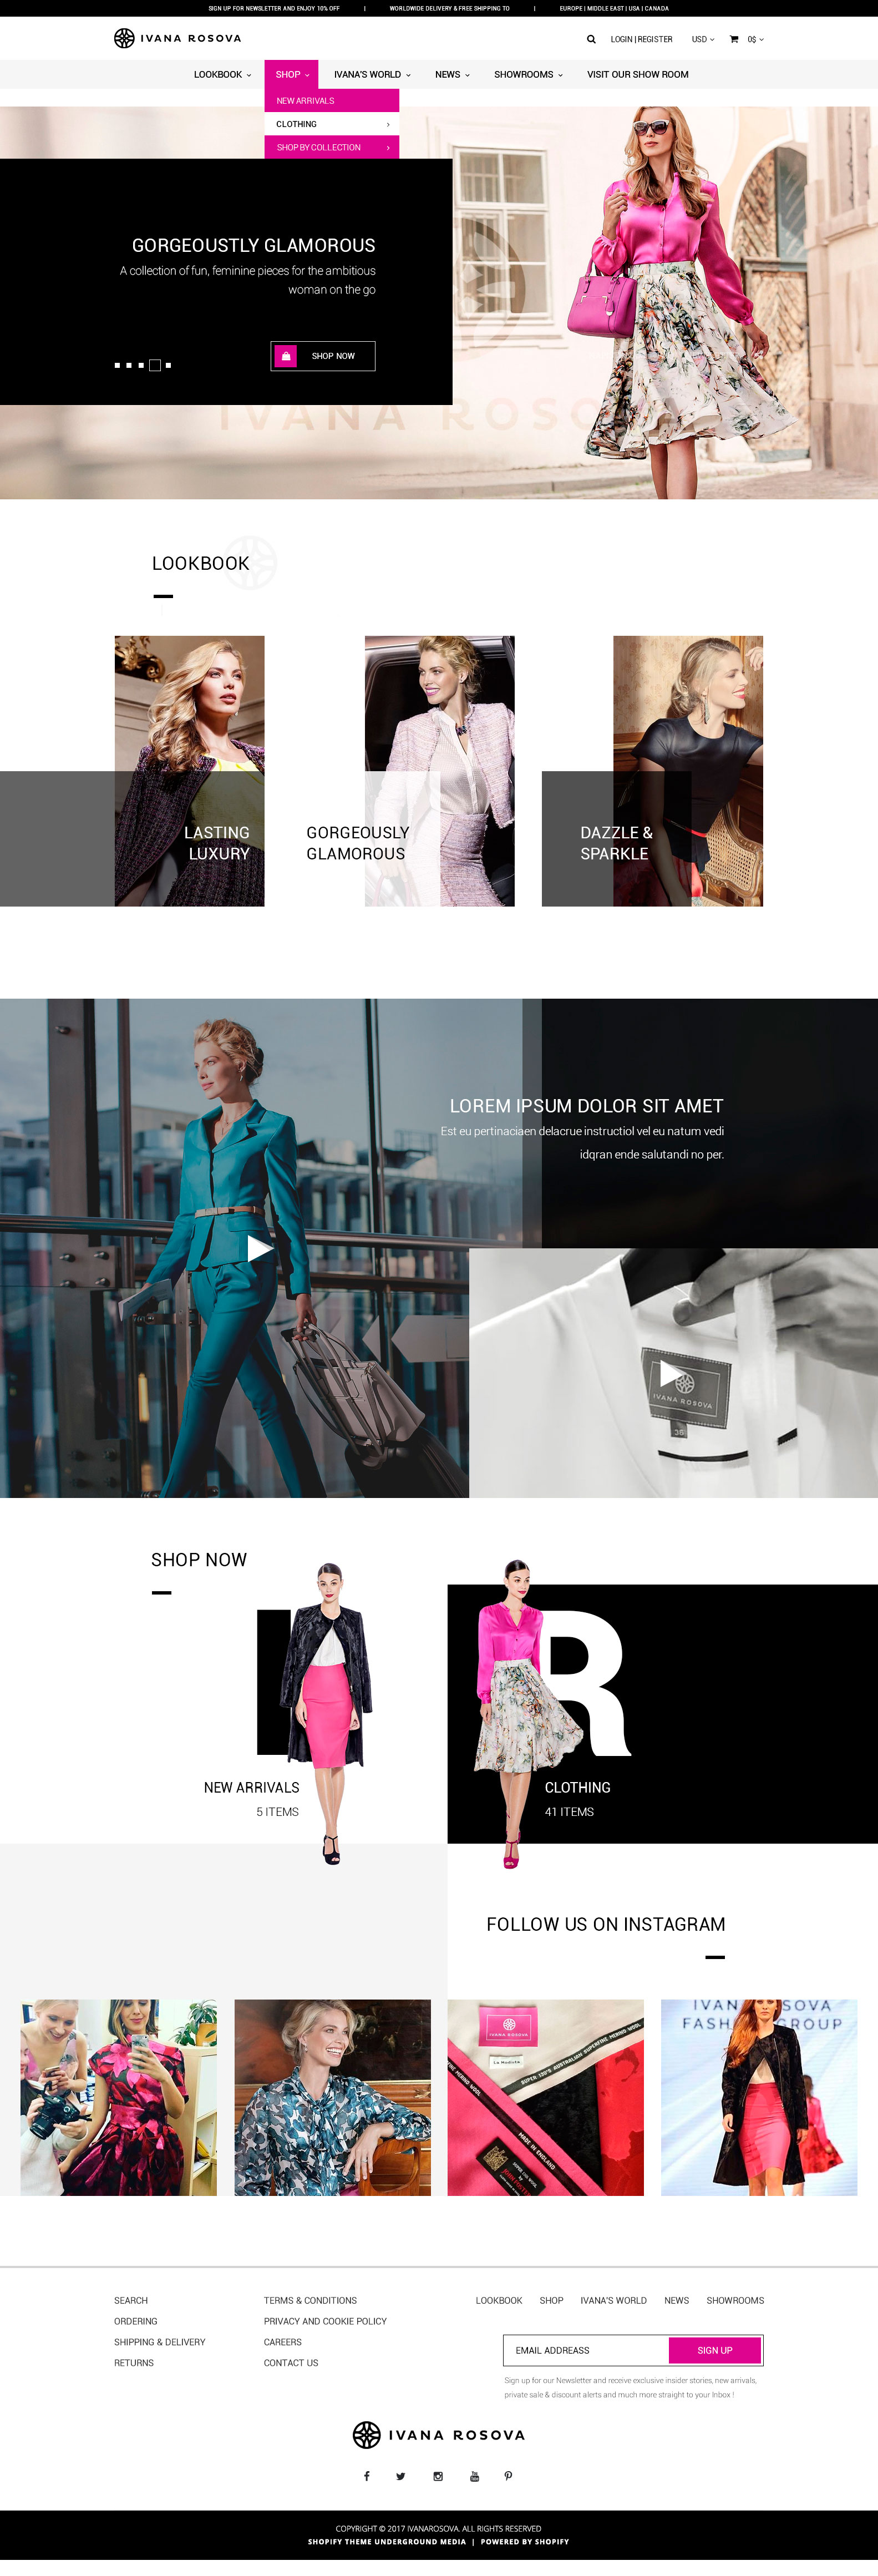 Retail sale of clothing - E-commerce project - Web-design - Merehead Development